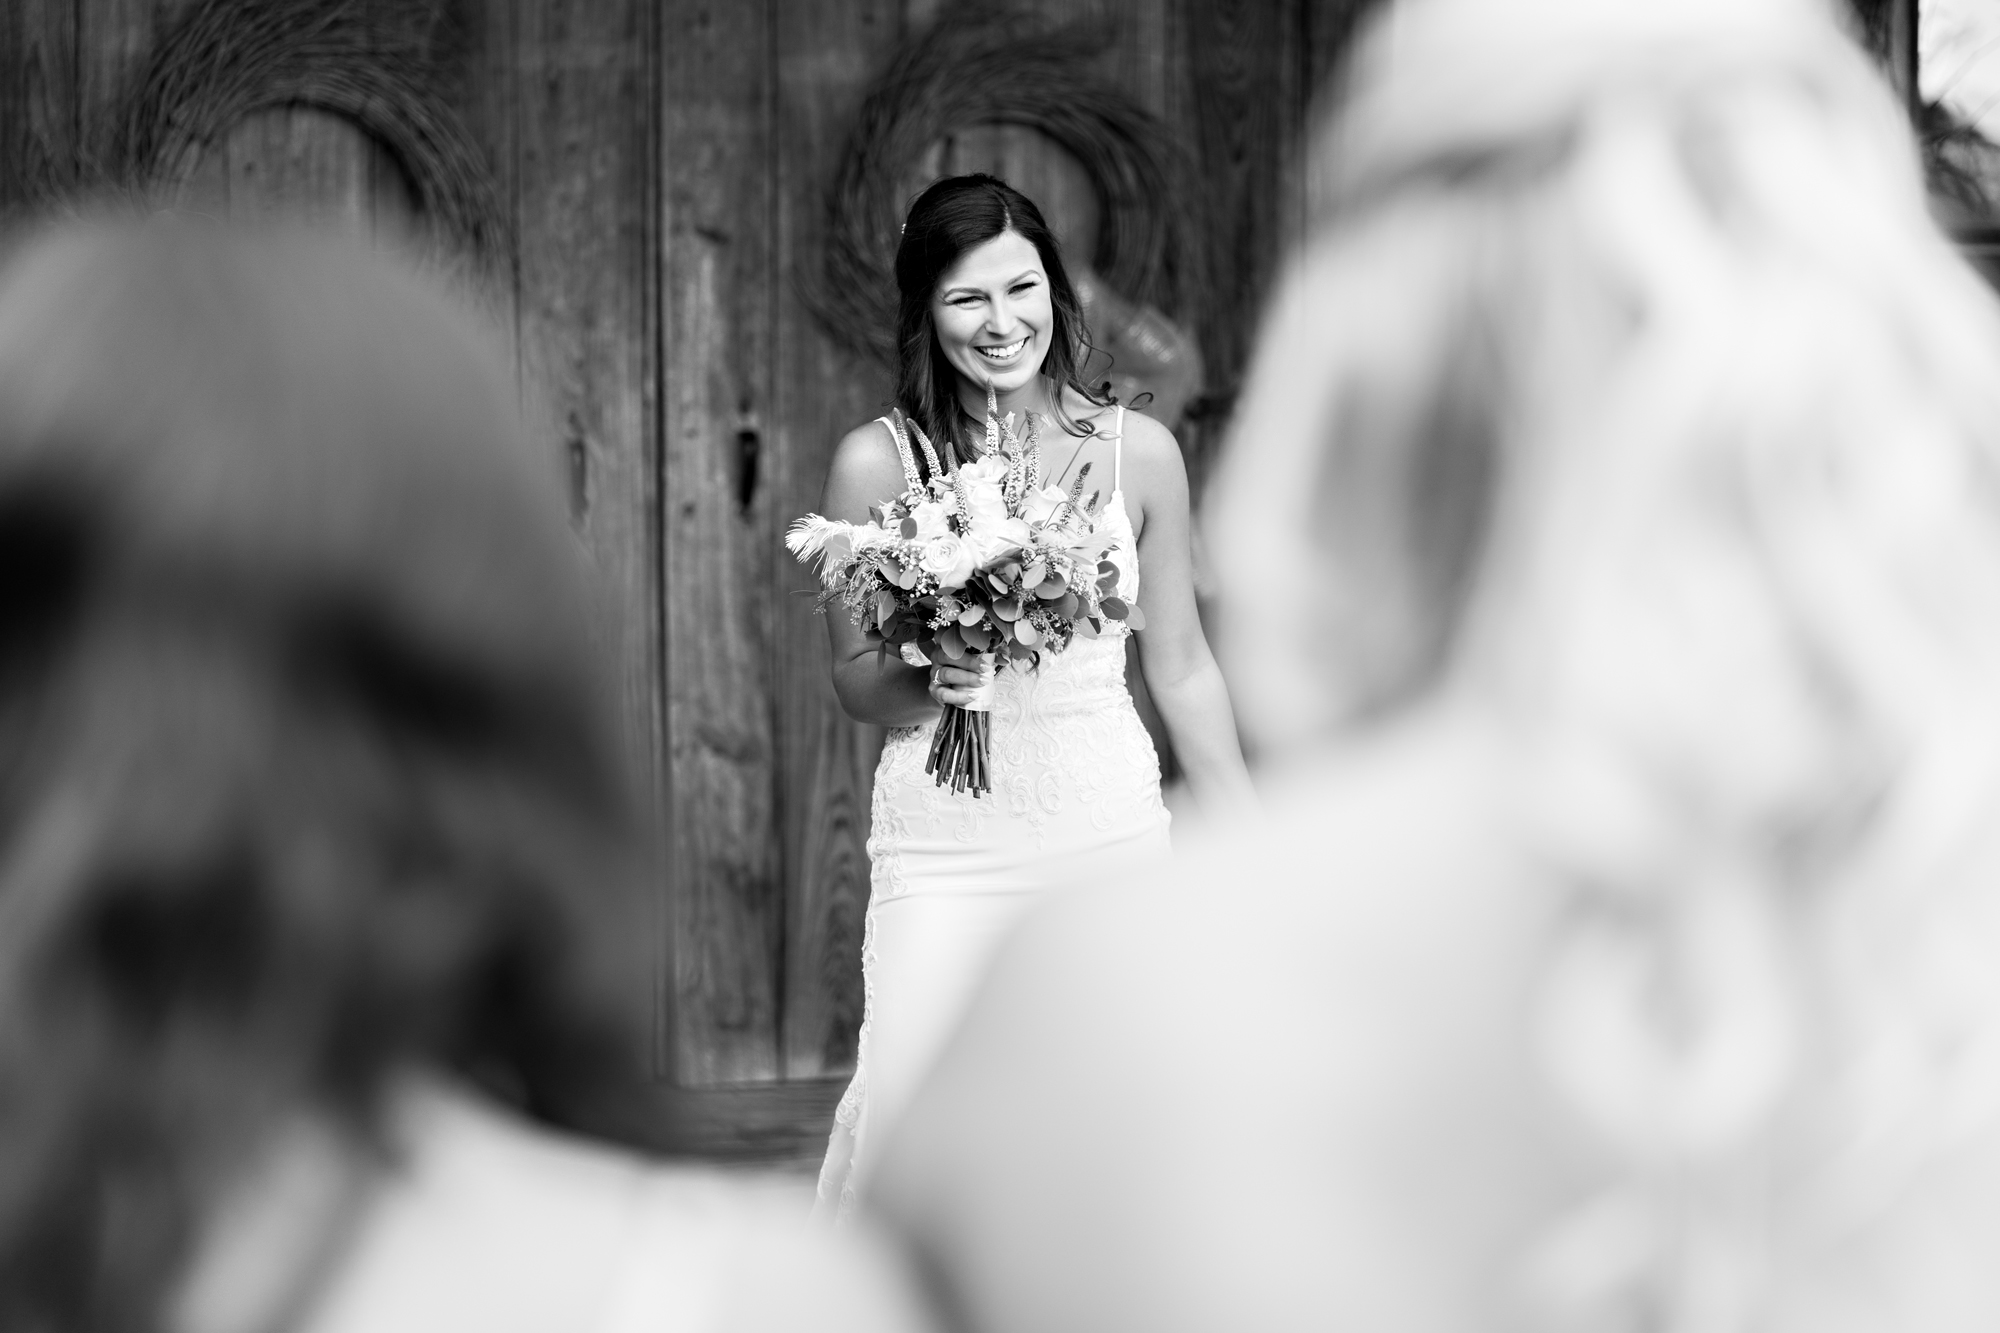 Fairhope-Alabama-Wedding-Photographers-Nick-Drollette-Photography-108.jpg